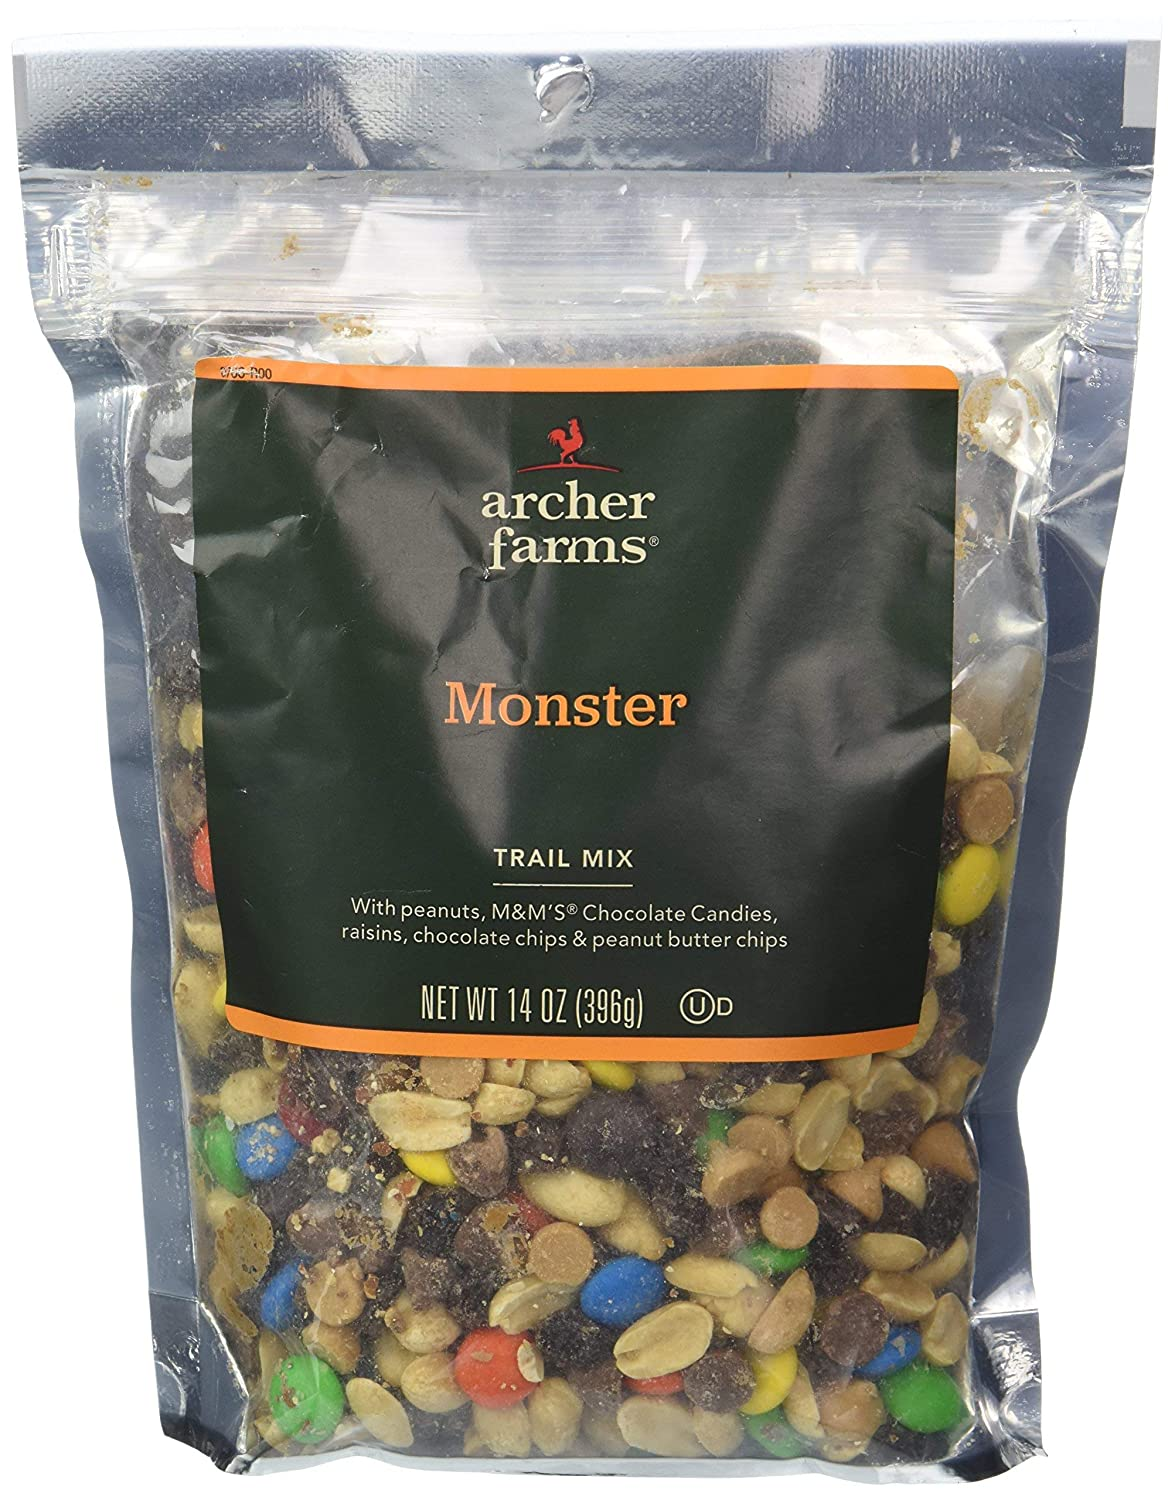 2 Bags Archer Farms Monster Trail Mix OF PACK Credence - 3 Charlotte Mall